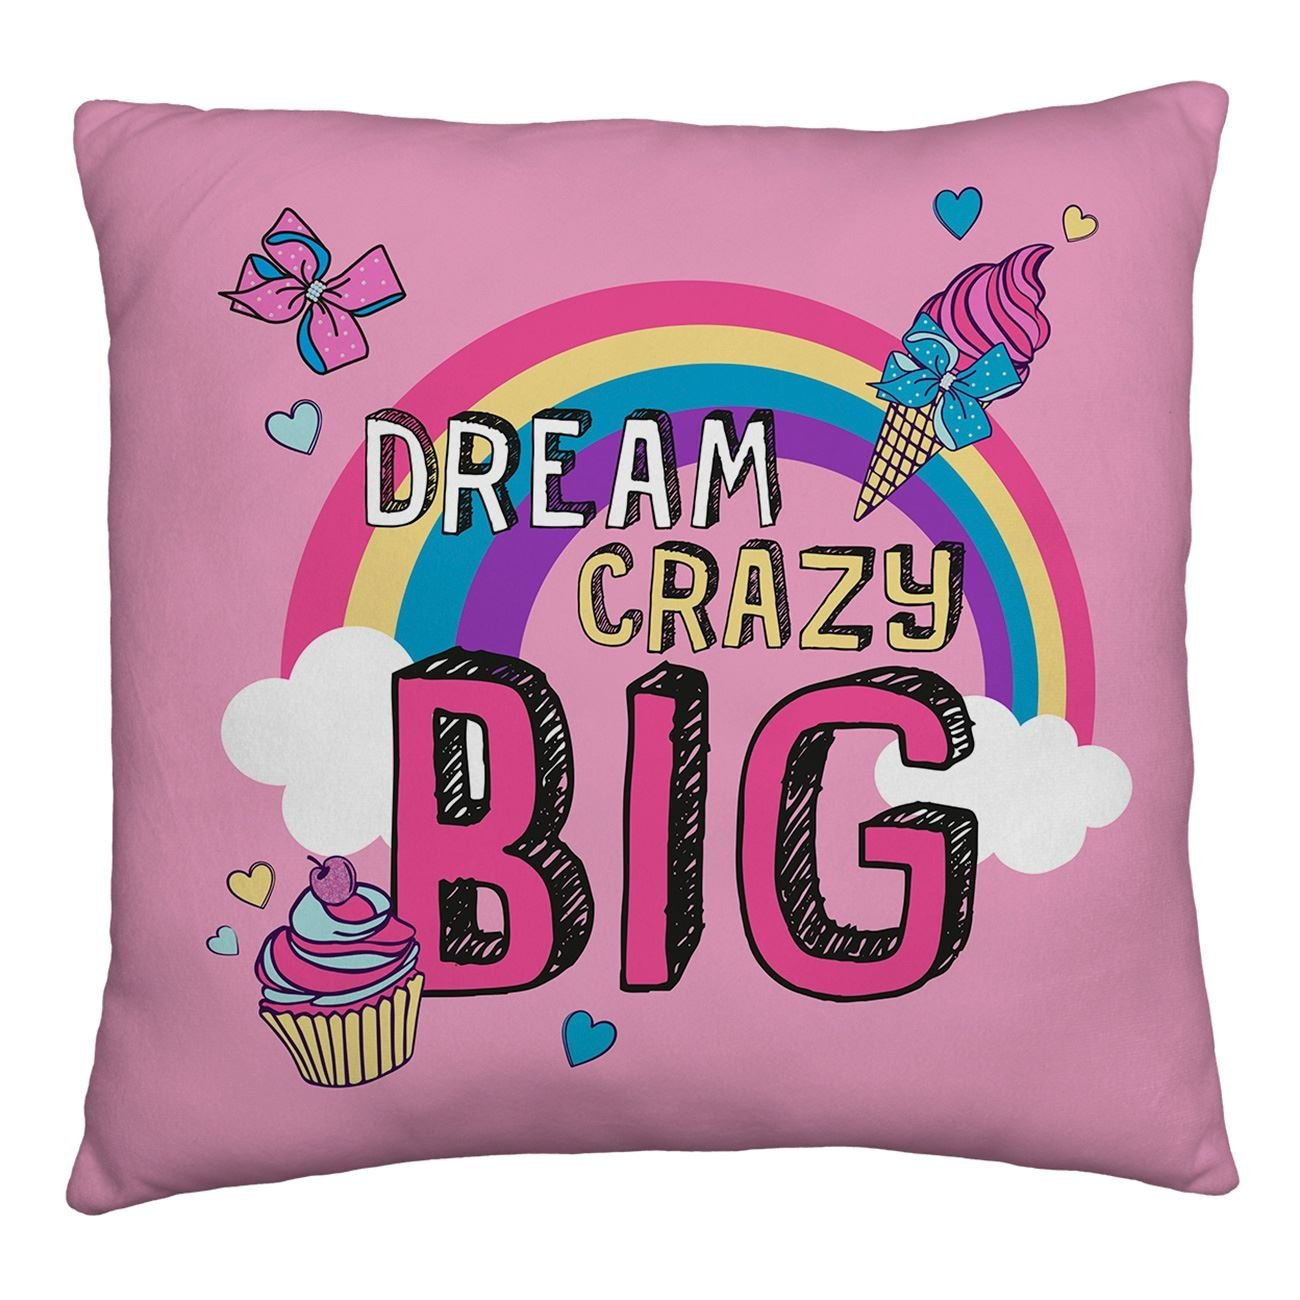 neu jojo siwa gro e schleife kissen m dchen kinder ventilator pink ebay. Black Bedroom Furniture Sets. Home Design Ideas